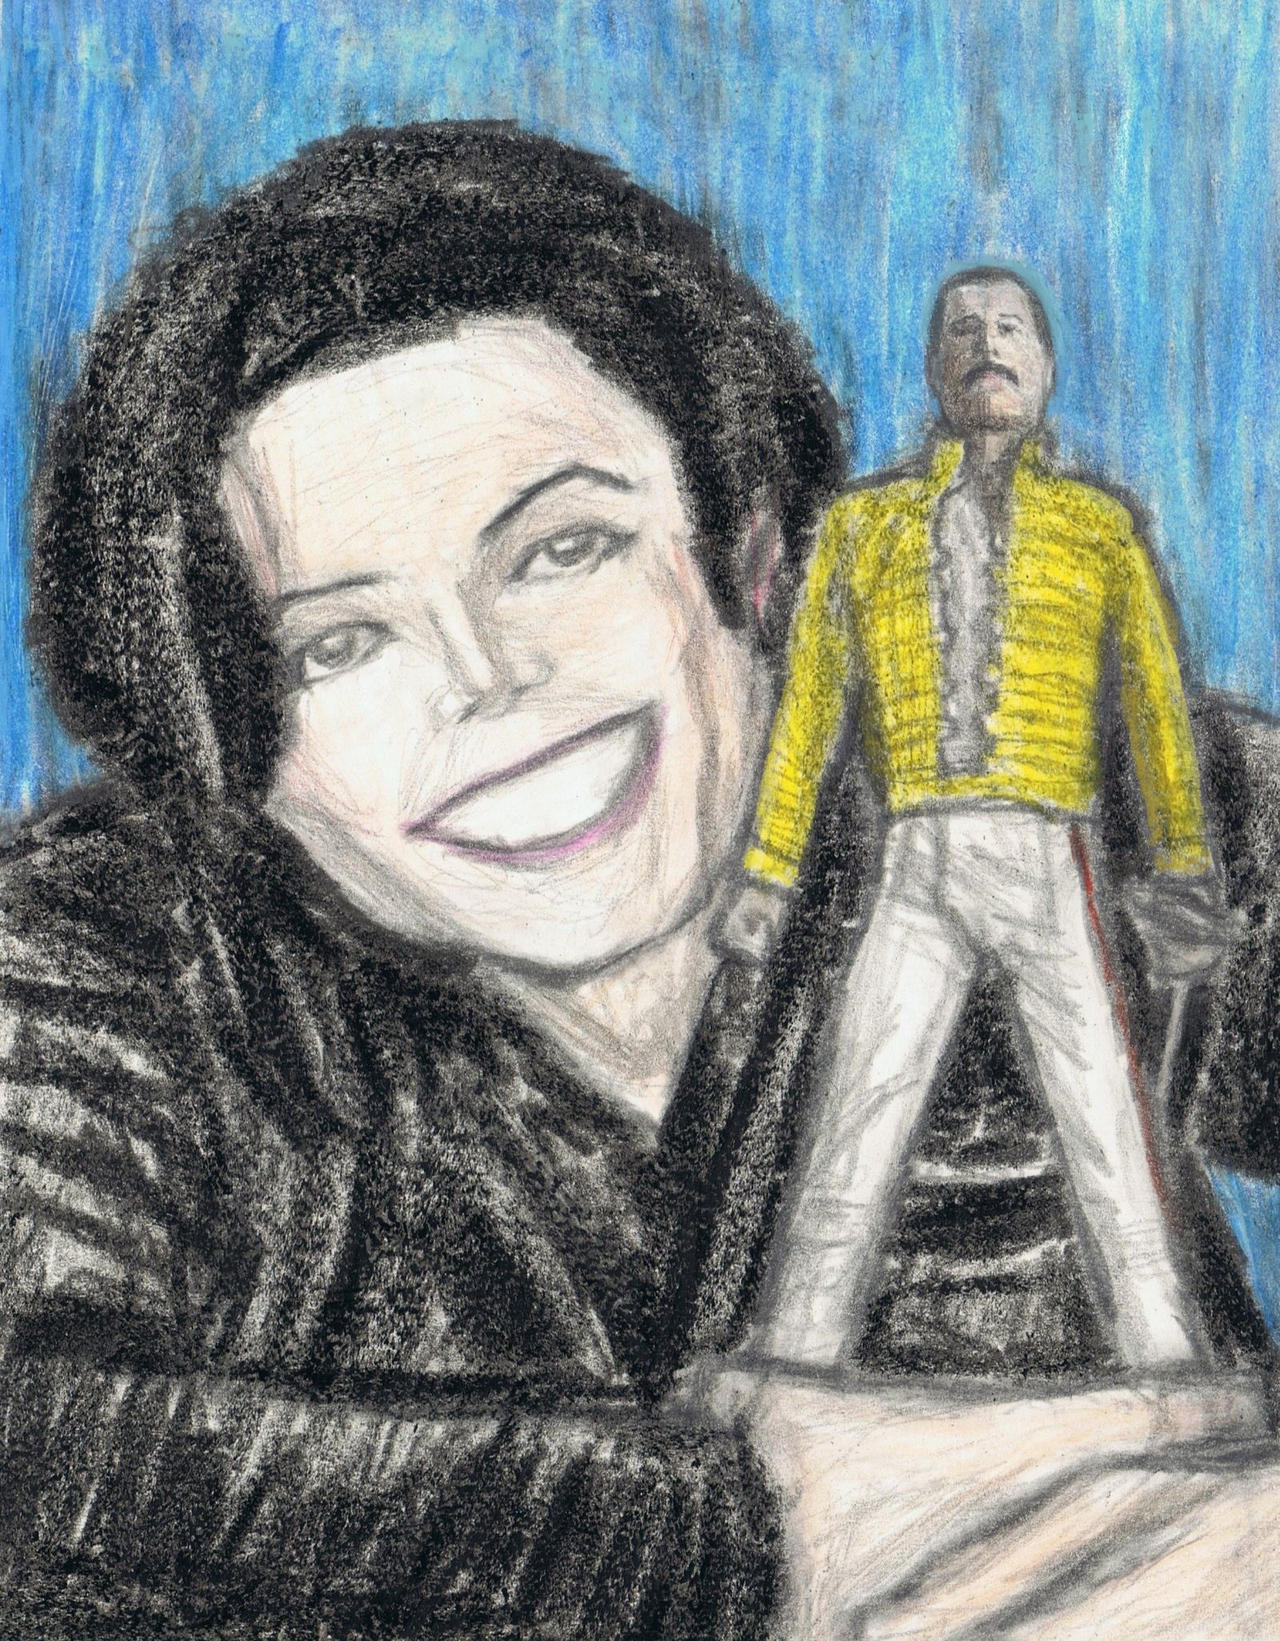 Michael Jackson with Freddie Mercury action figure by gagambo